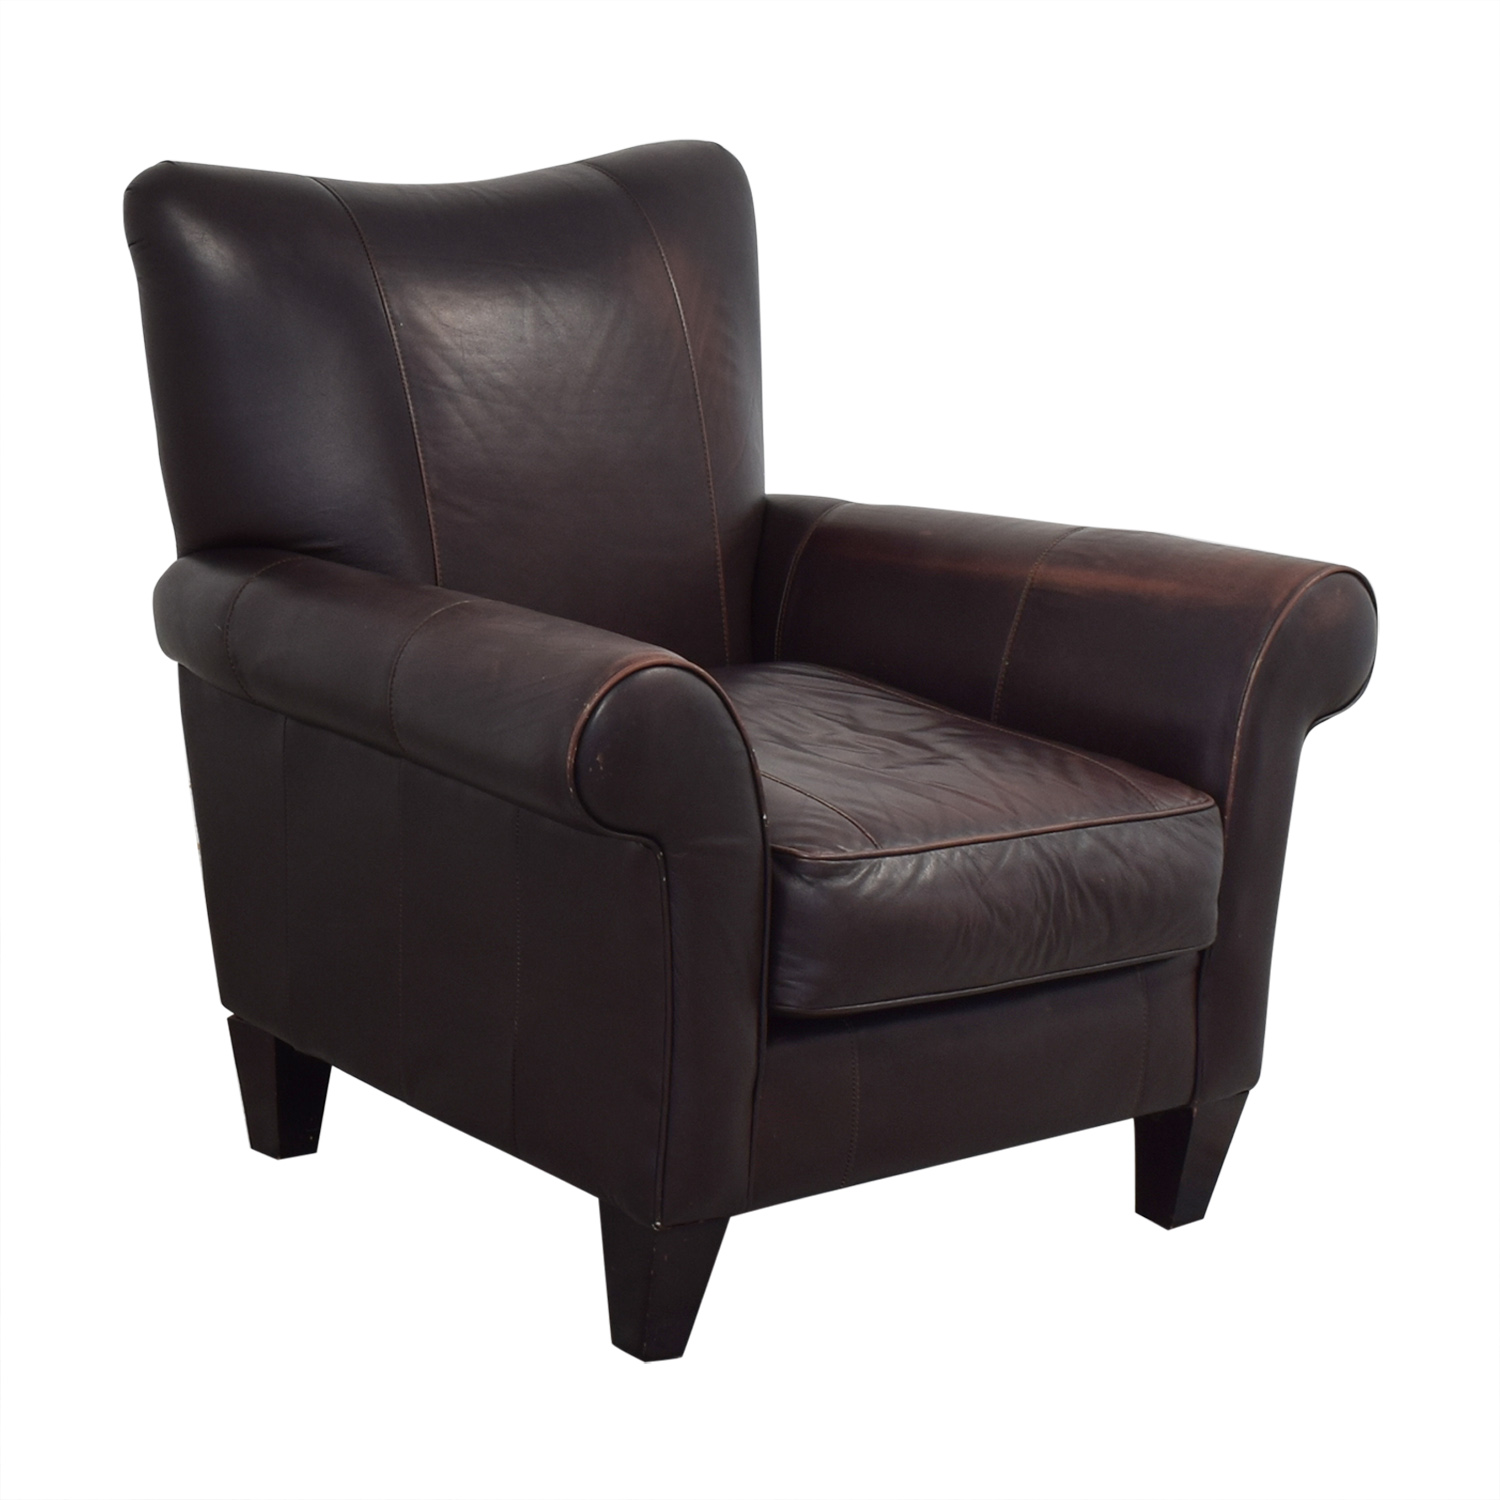 Bauhaus Furniture Bauhaus Furniture Leather Chair for sale